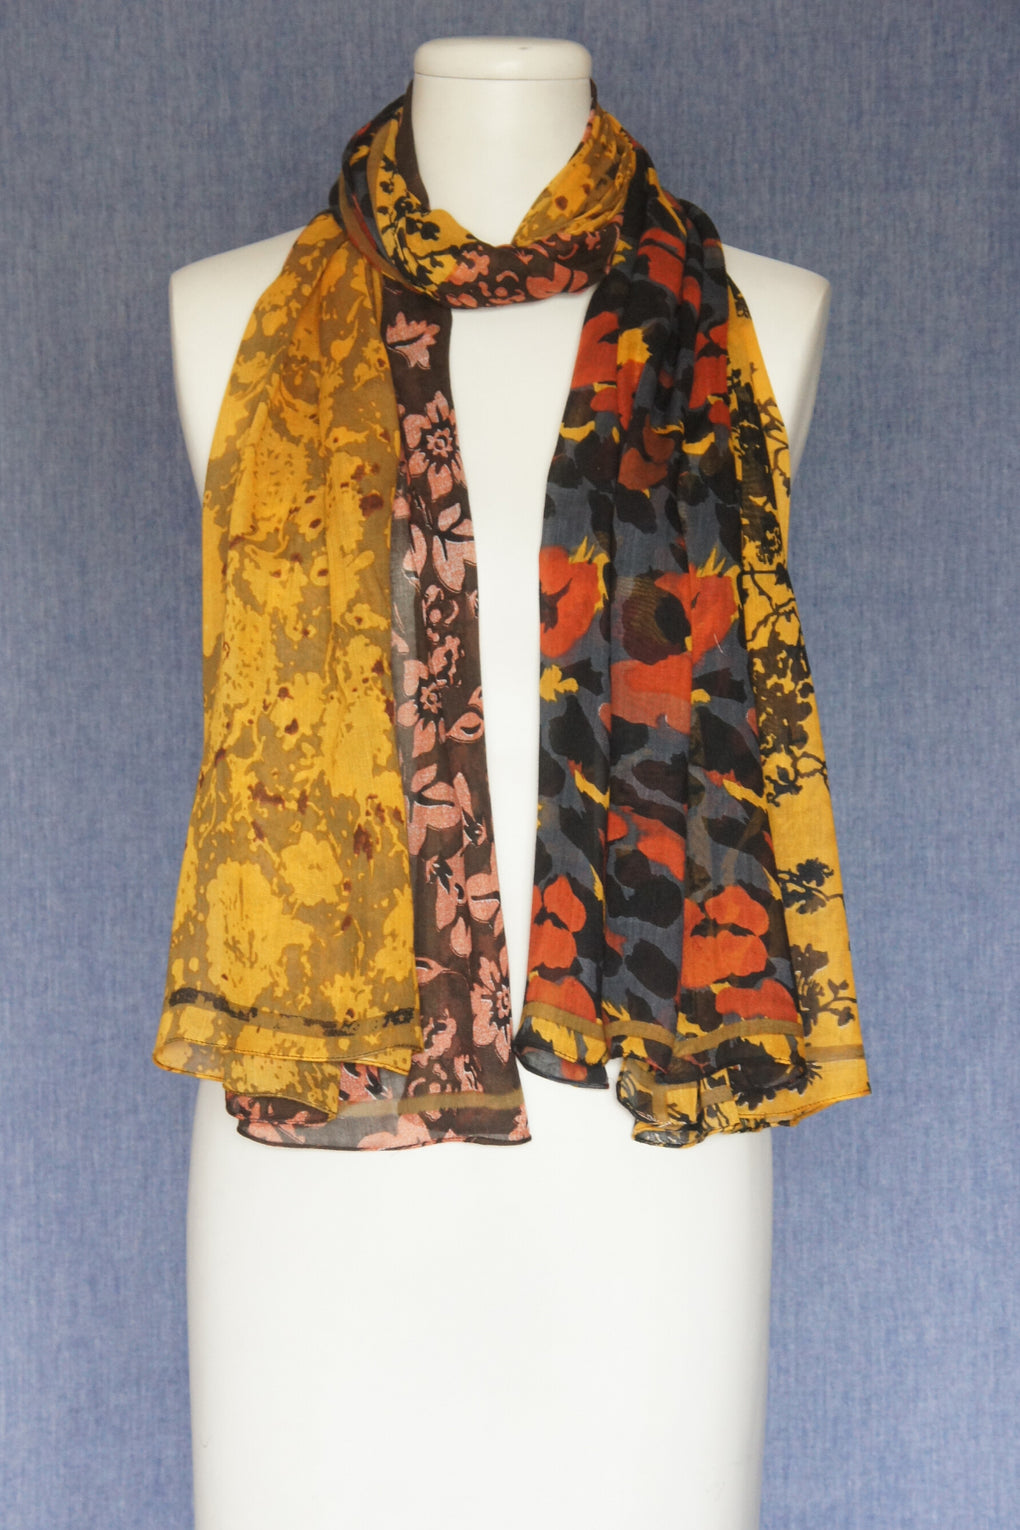 4 Patch Animal with Flowers Scarf (SE-1608)